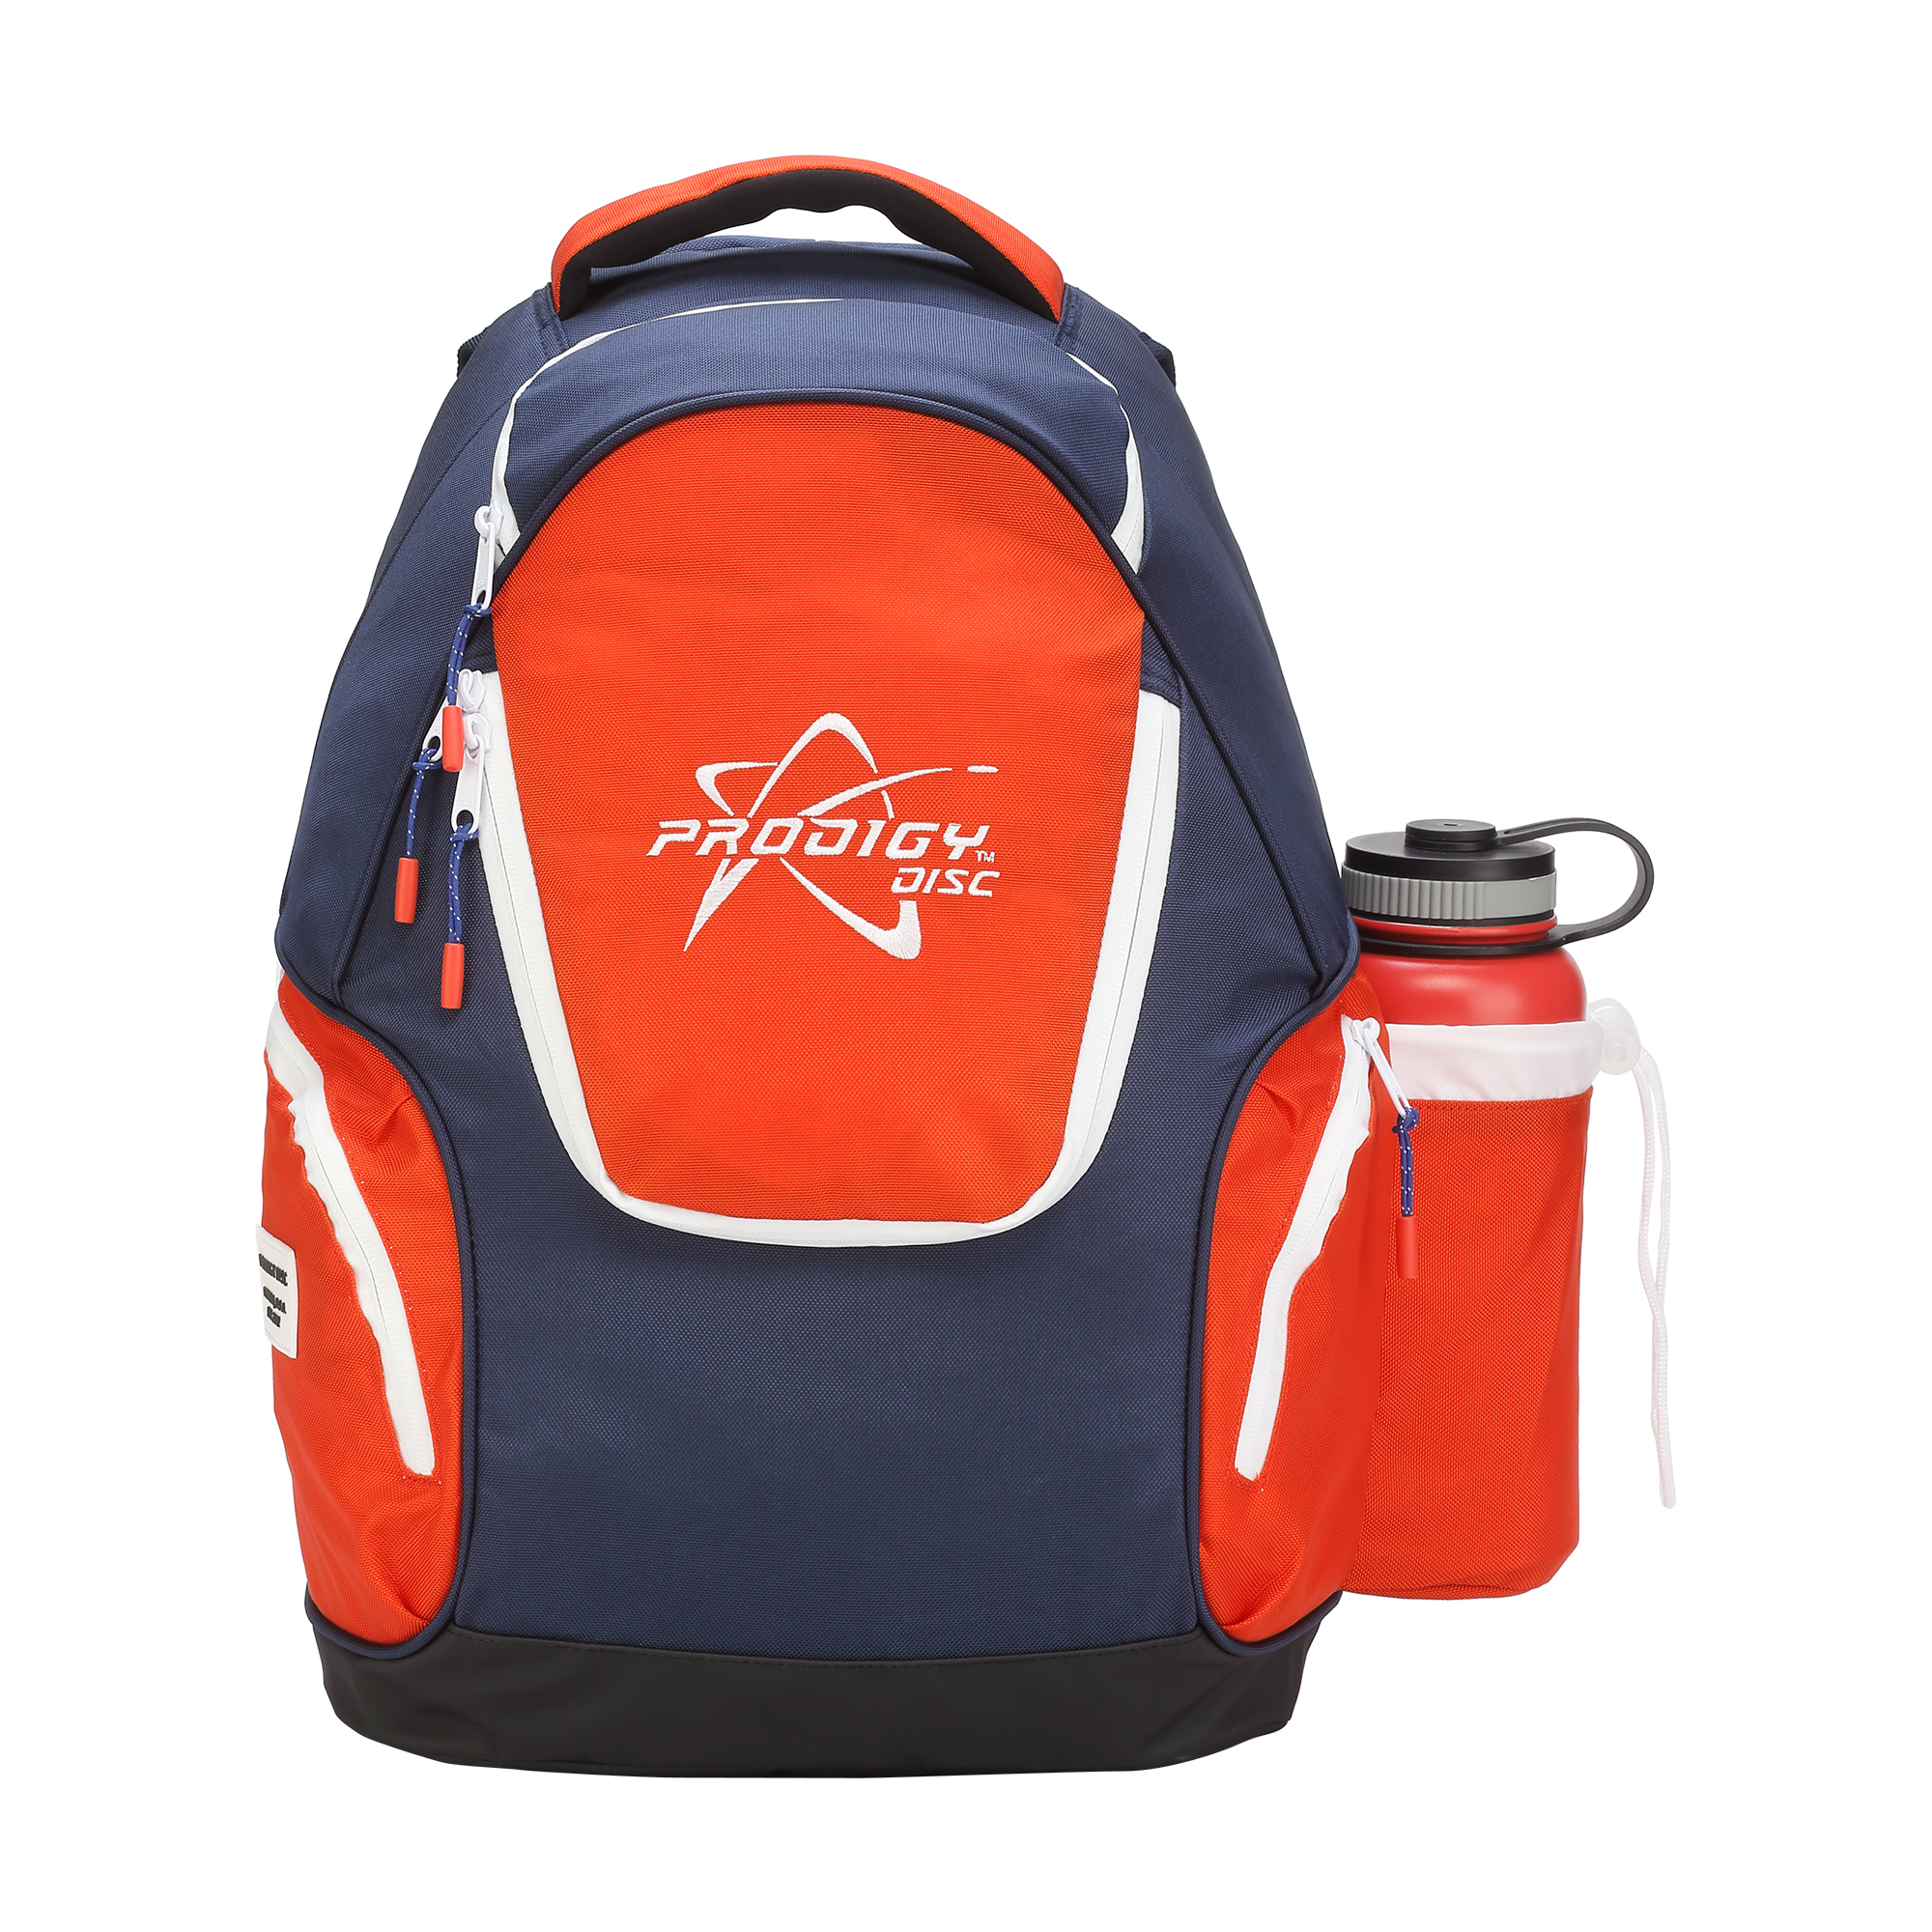 prodigy-bp-3-v2-blue-red-front-closed.jpg